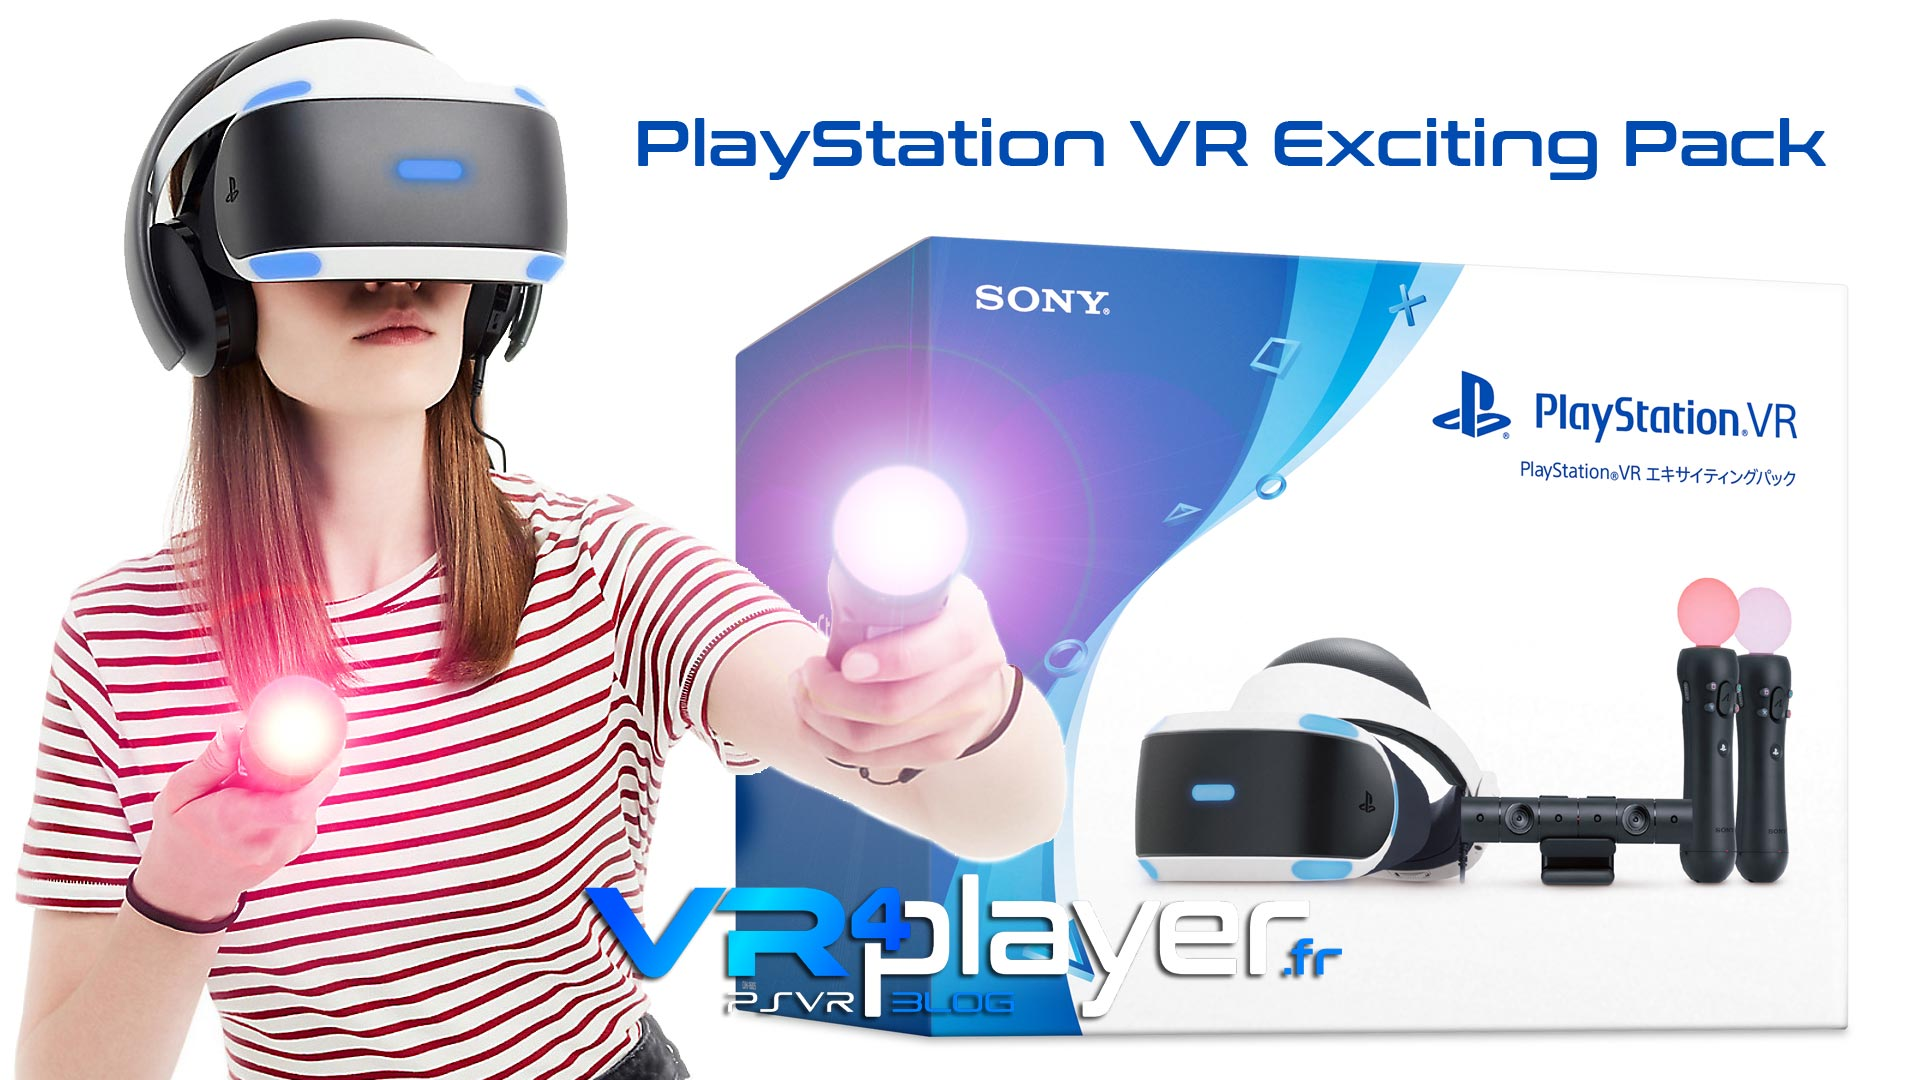 PlayStation VR Exciting Pack vr4player.fr